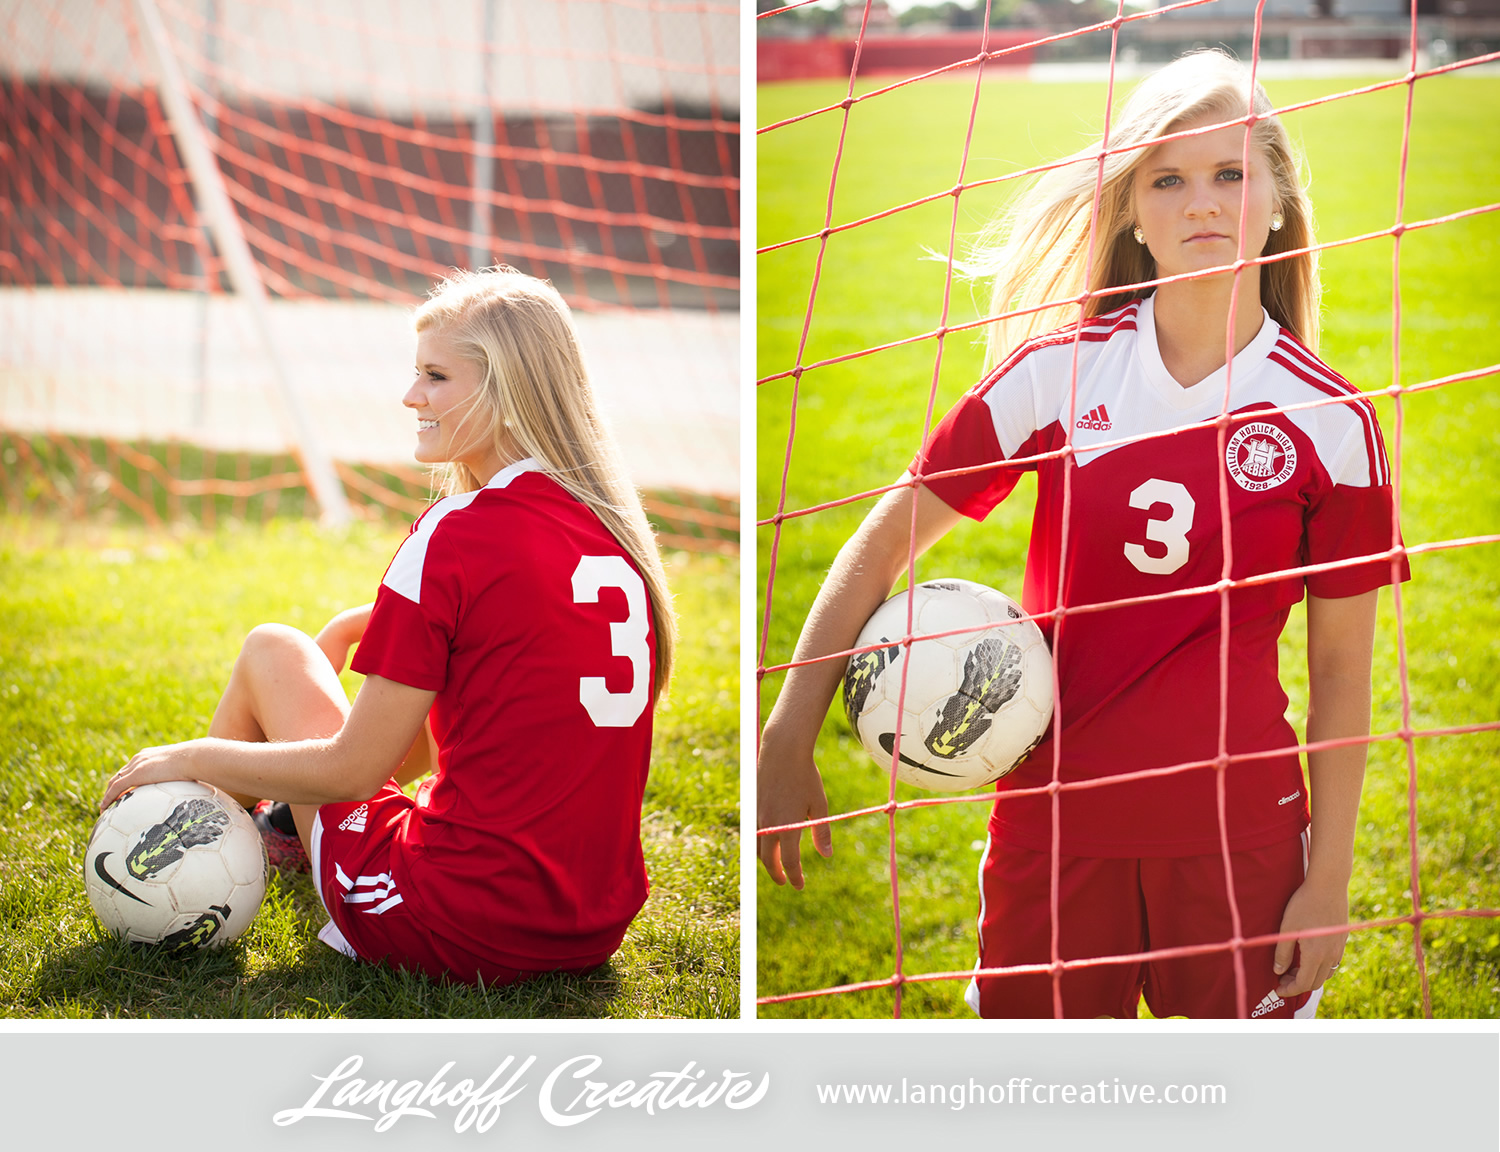 RacineSeniorPictures-SeniorSession-2015Senior-RacineSenior-Kaci-6-photo.jpg